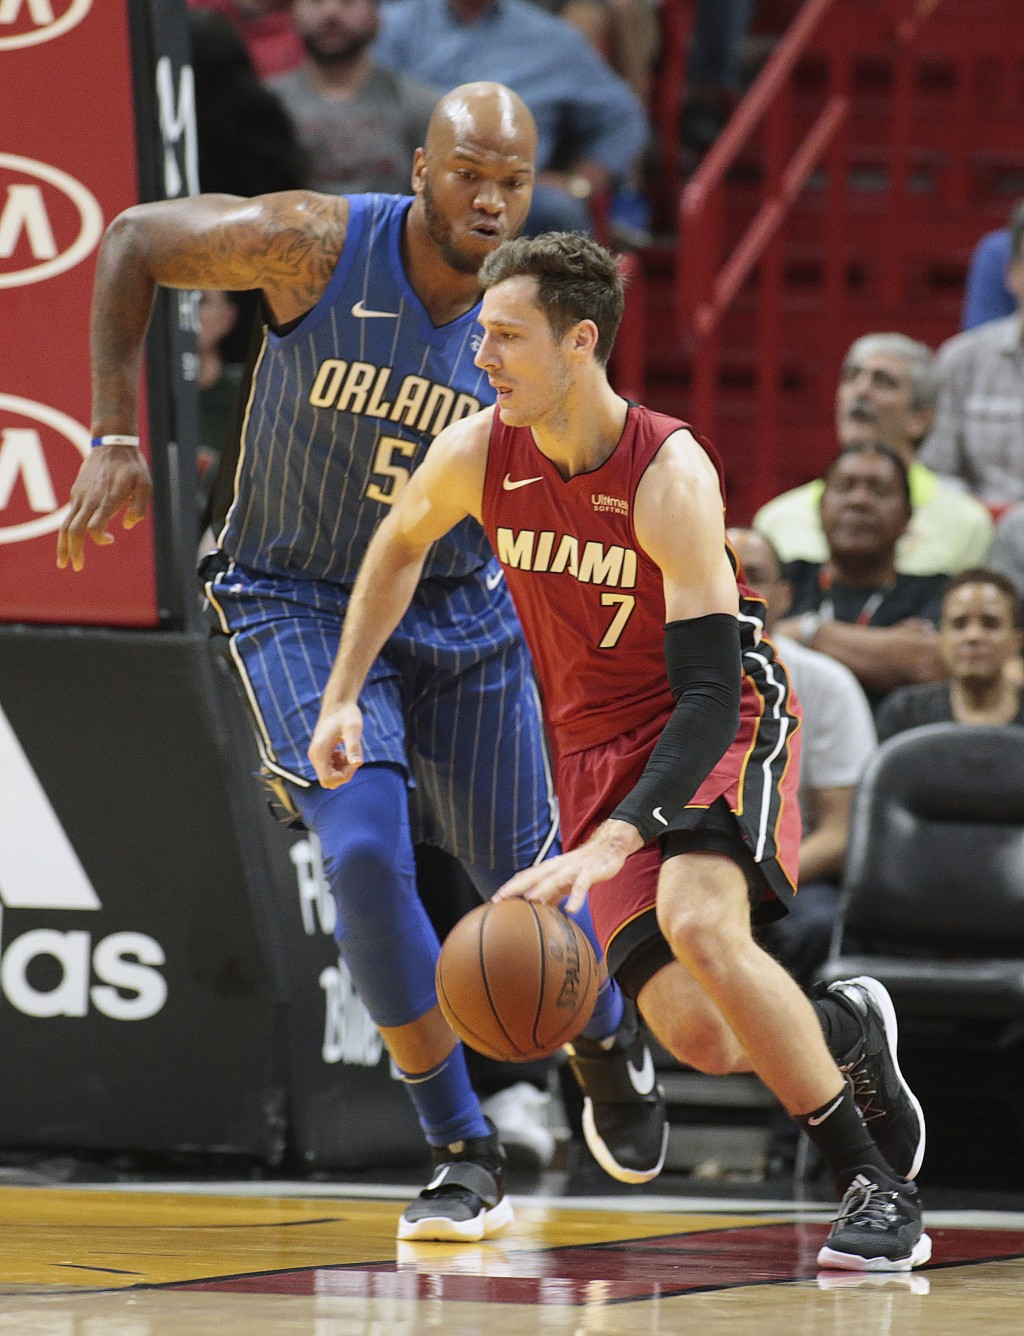 Orlando Magic forward Marreese Speights (5) defends against Miami Heat guard Goran Dragic (7) during the first half of an NBA basketball game, Tuesday...